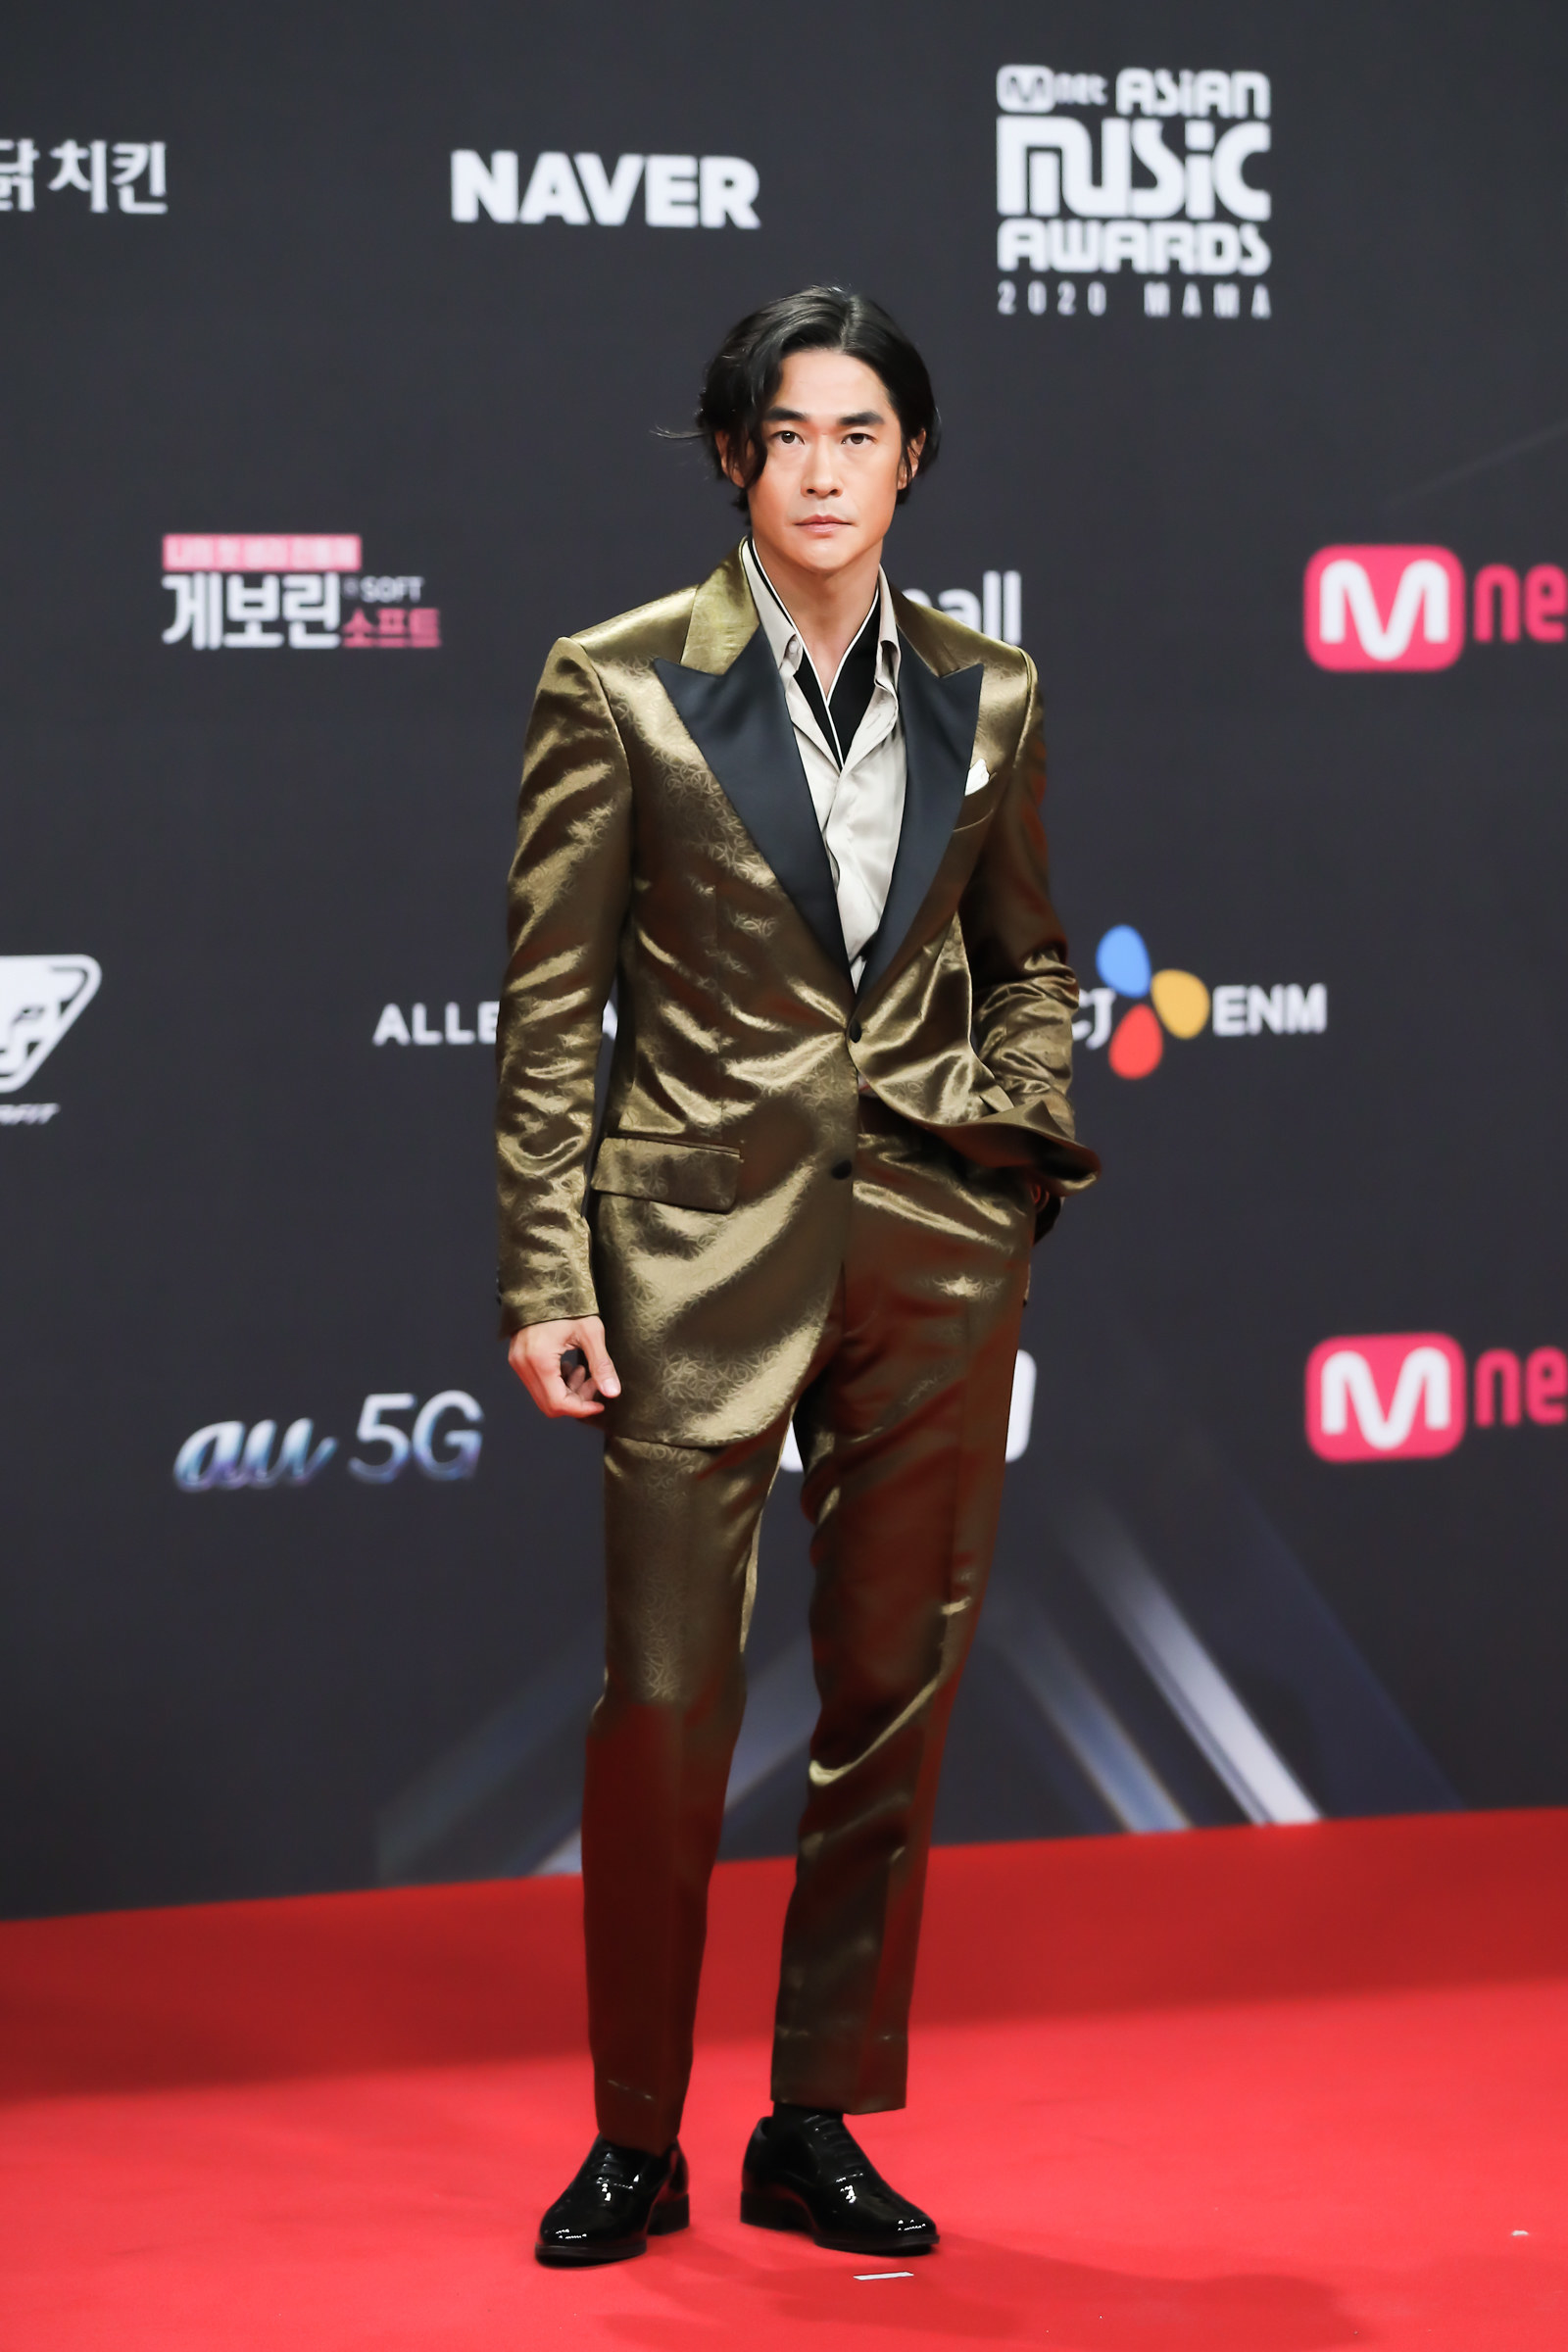 Bae Jeong Nam wears a metallic suit  at the 2020 Mnet Asian Music Awards